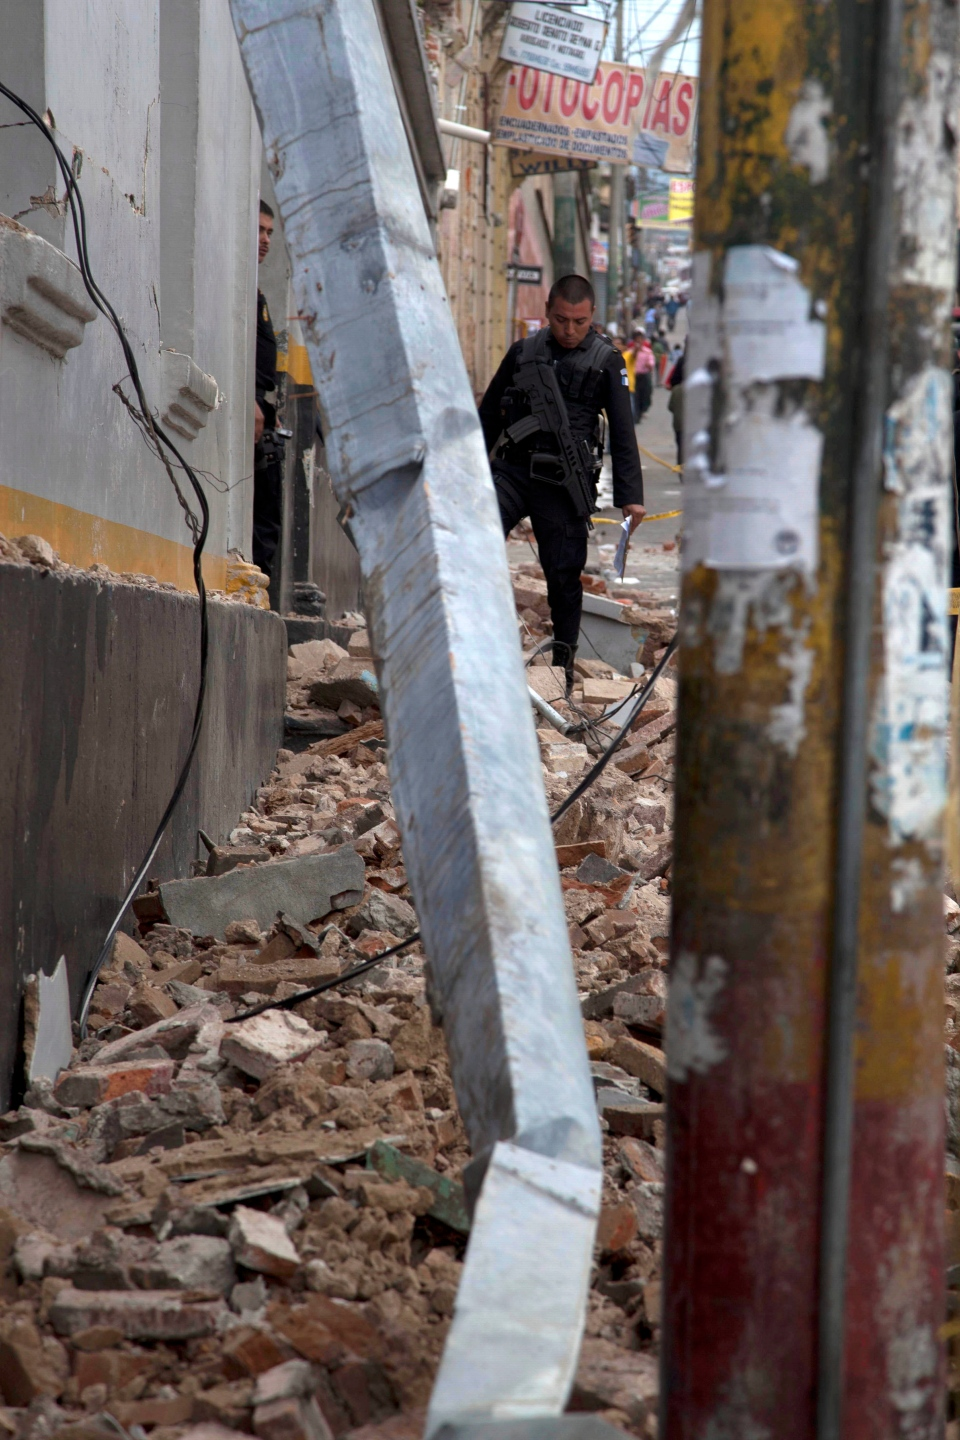 A police officer looks at rubble after a magnitude 7.4 earthquake struck in San Marcos, Guatemala, Wednesday, Nov. 7, 2012. (AP / Moises Castillo)